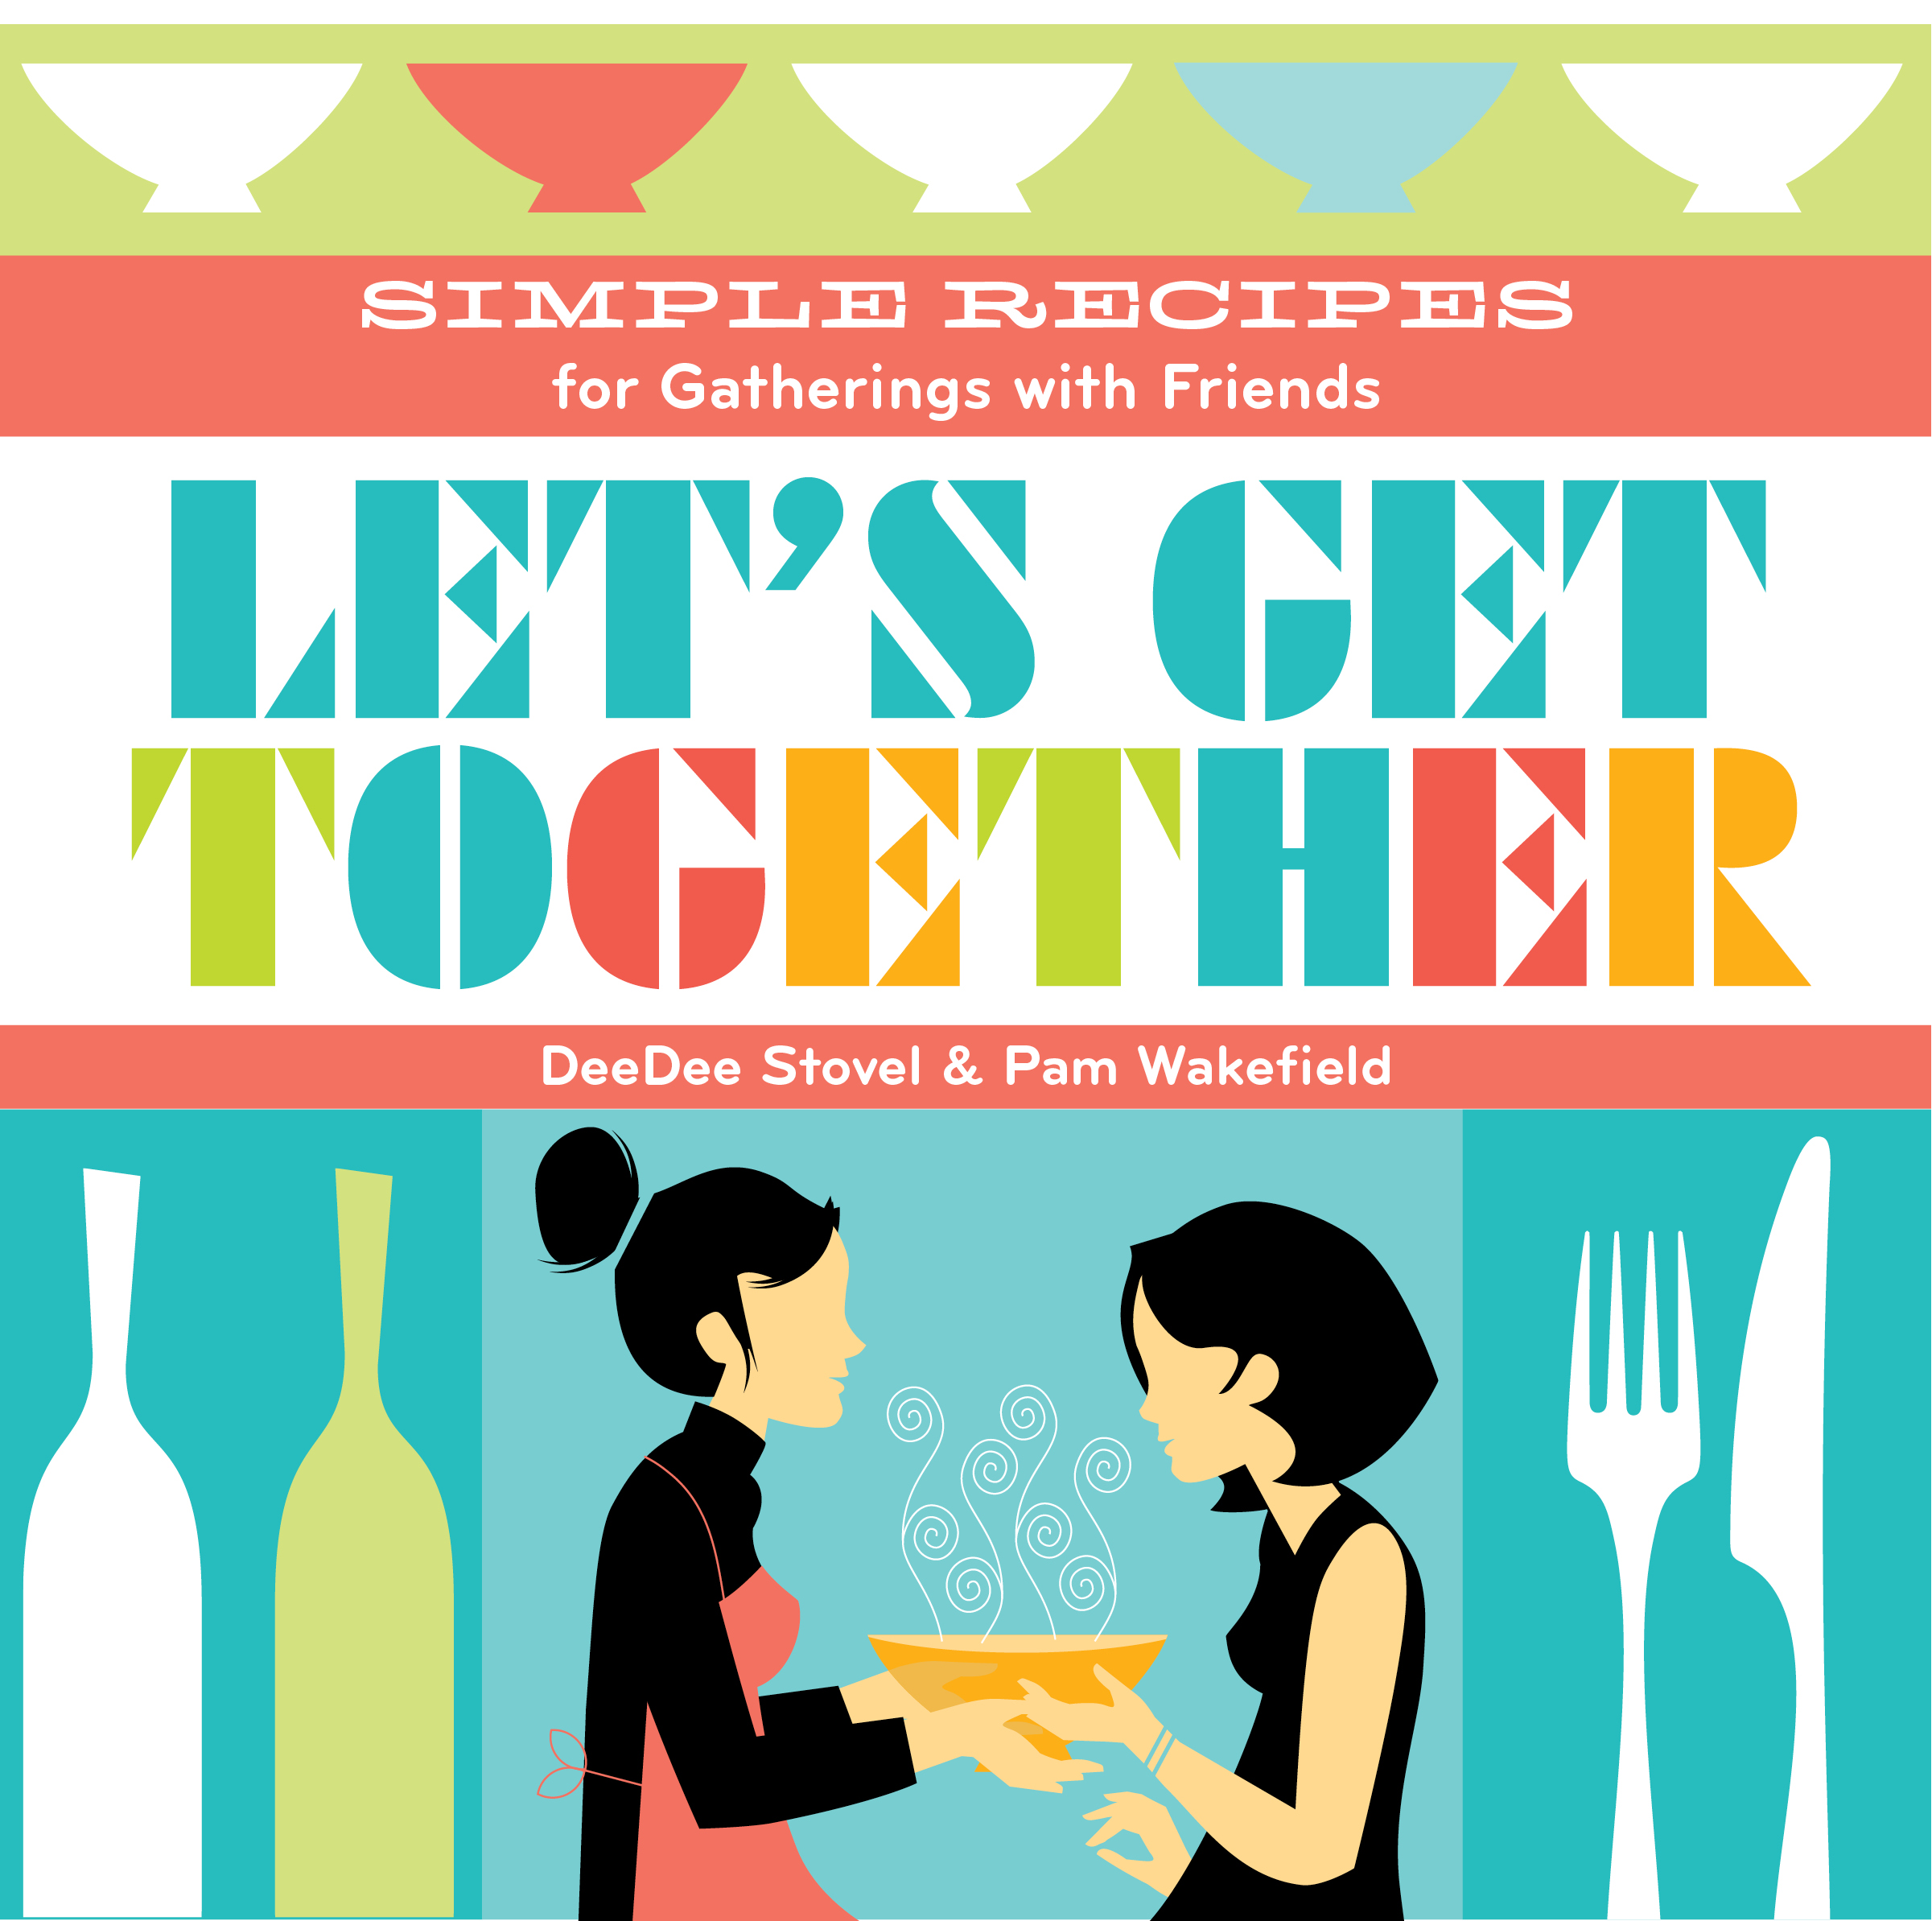 Let's Get Together Simple Recipes for Gatherings With Friends - DeeDee Stovel